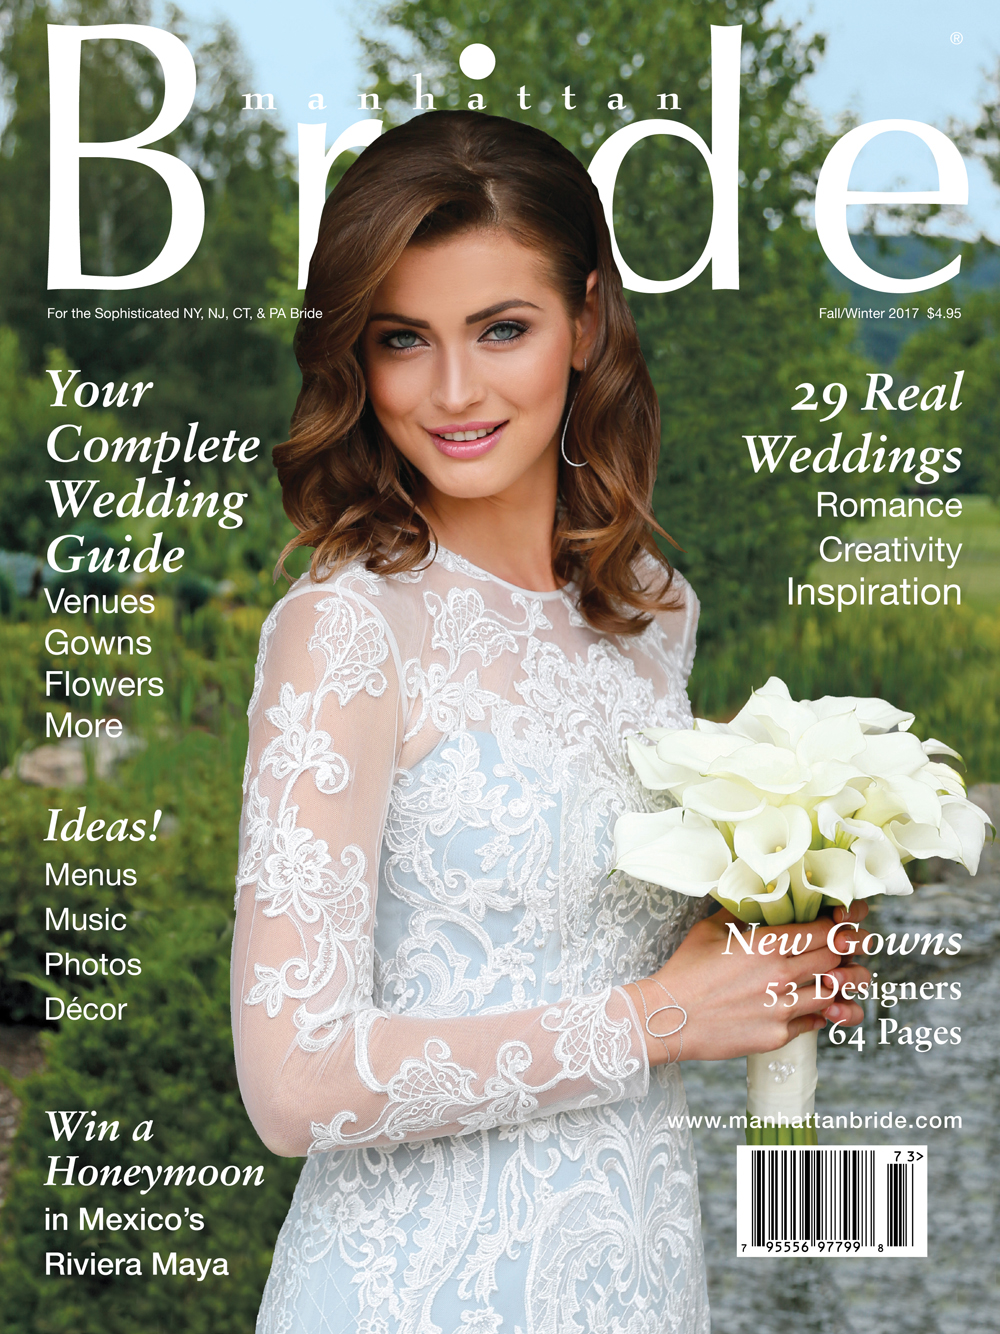 Manhattan Bride Fall/Winter 2017 cover